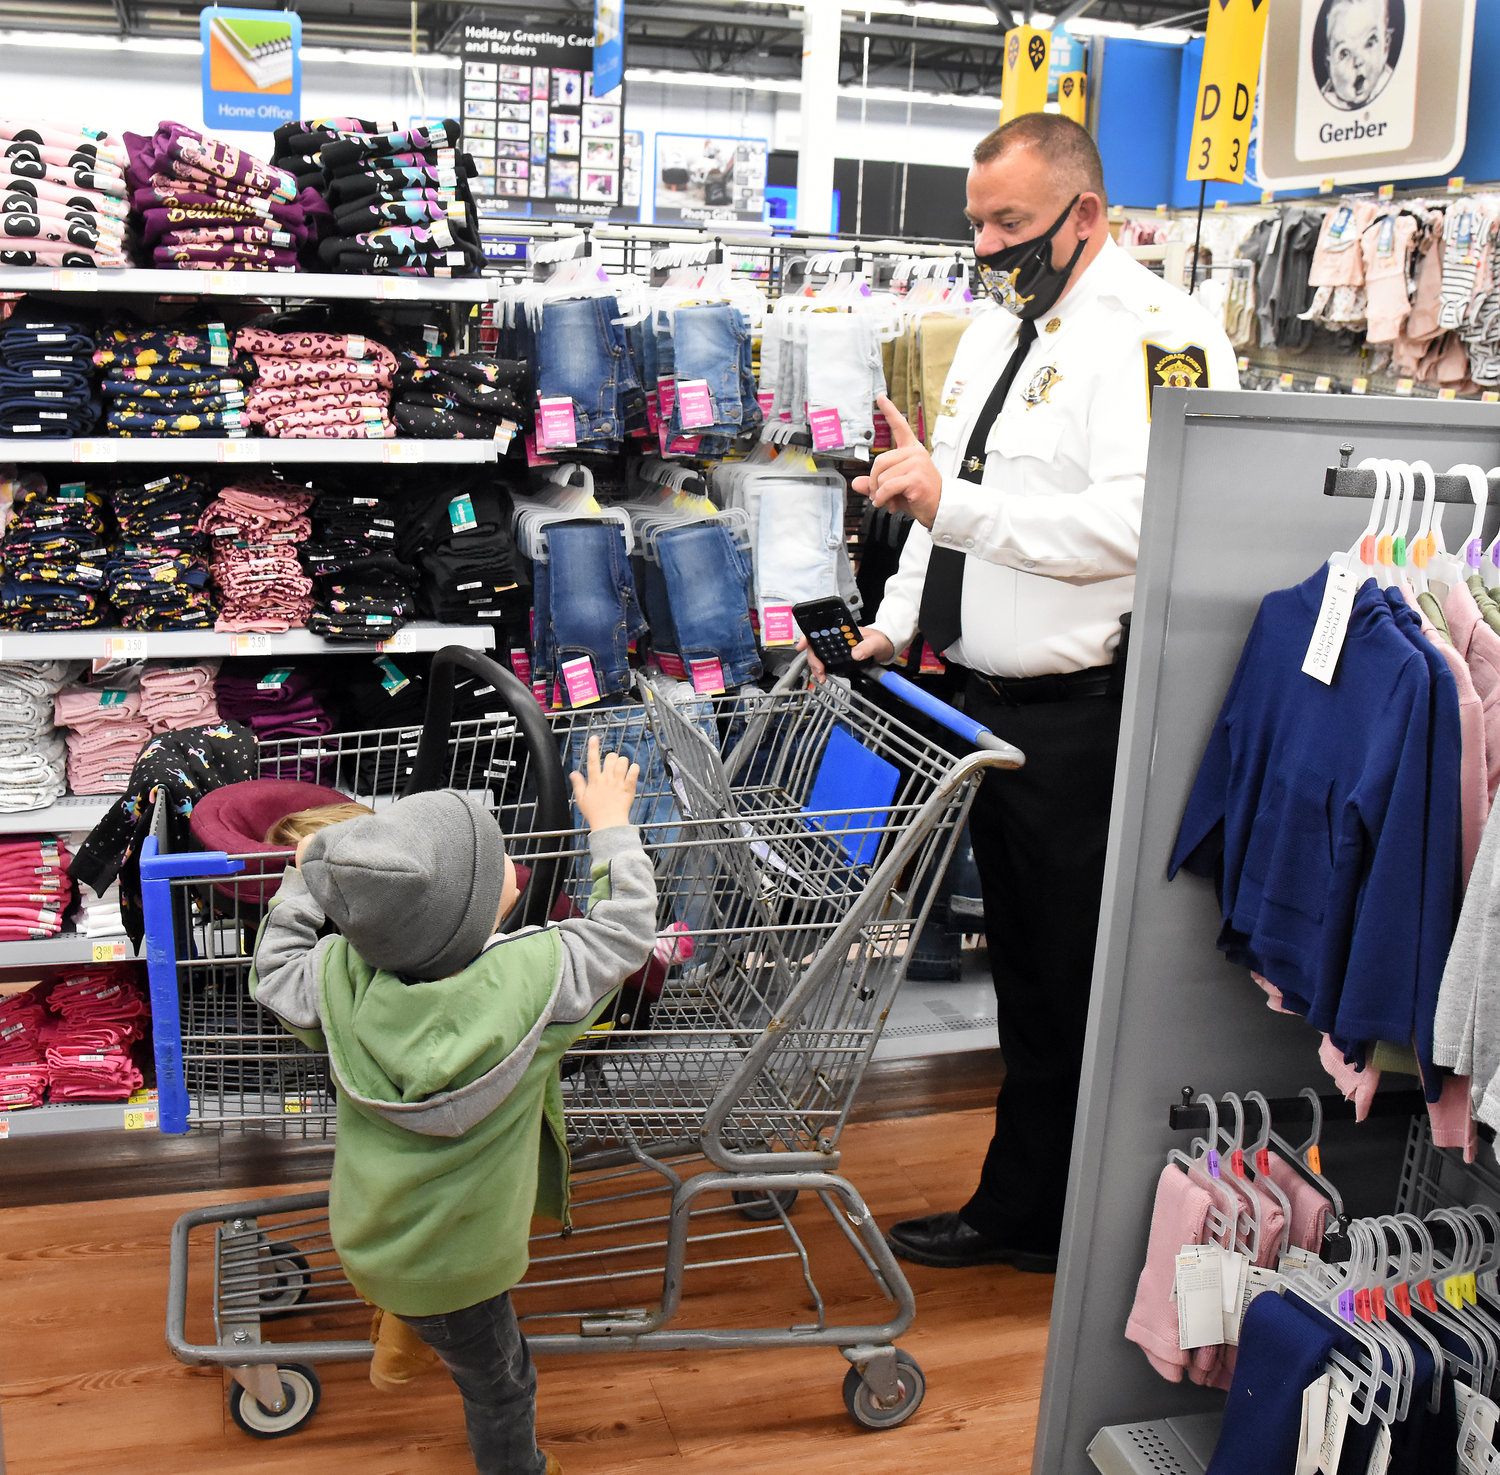 Sheriff-elect Scott Eiler reminds a young boy he needs to pick out one clothing item.